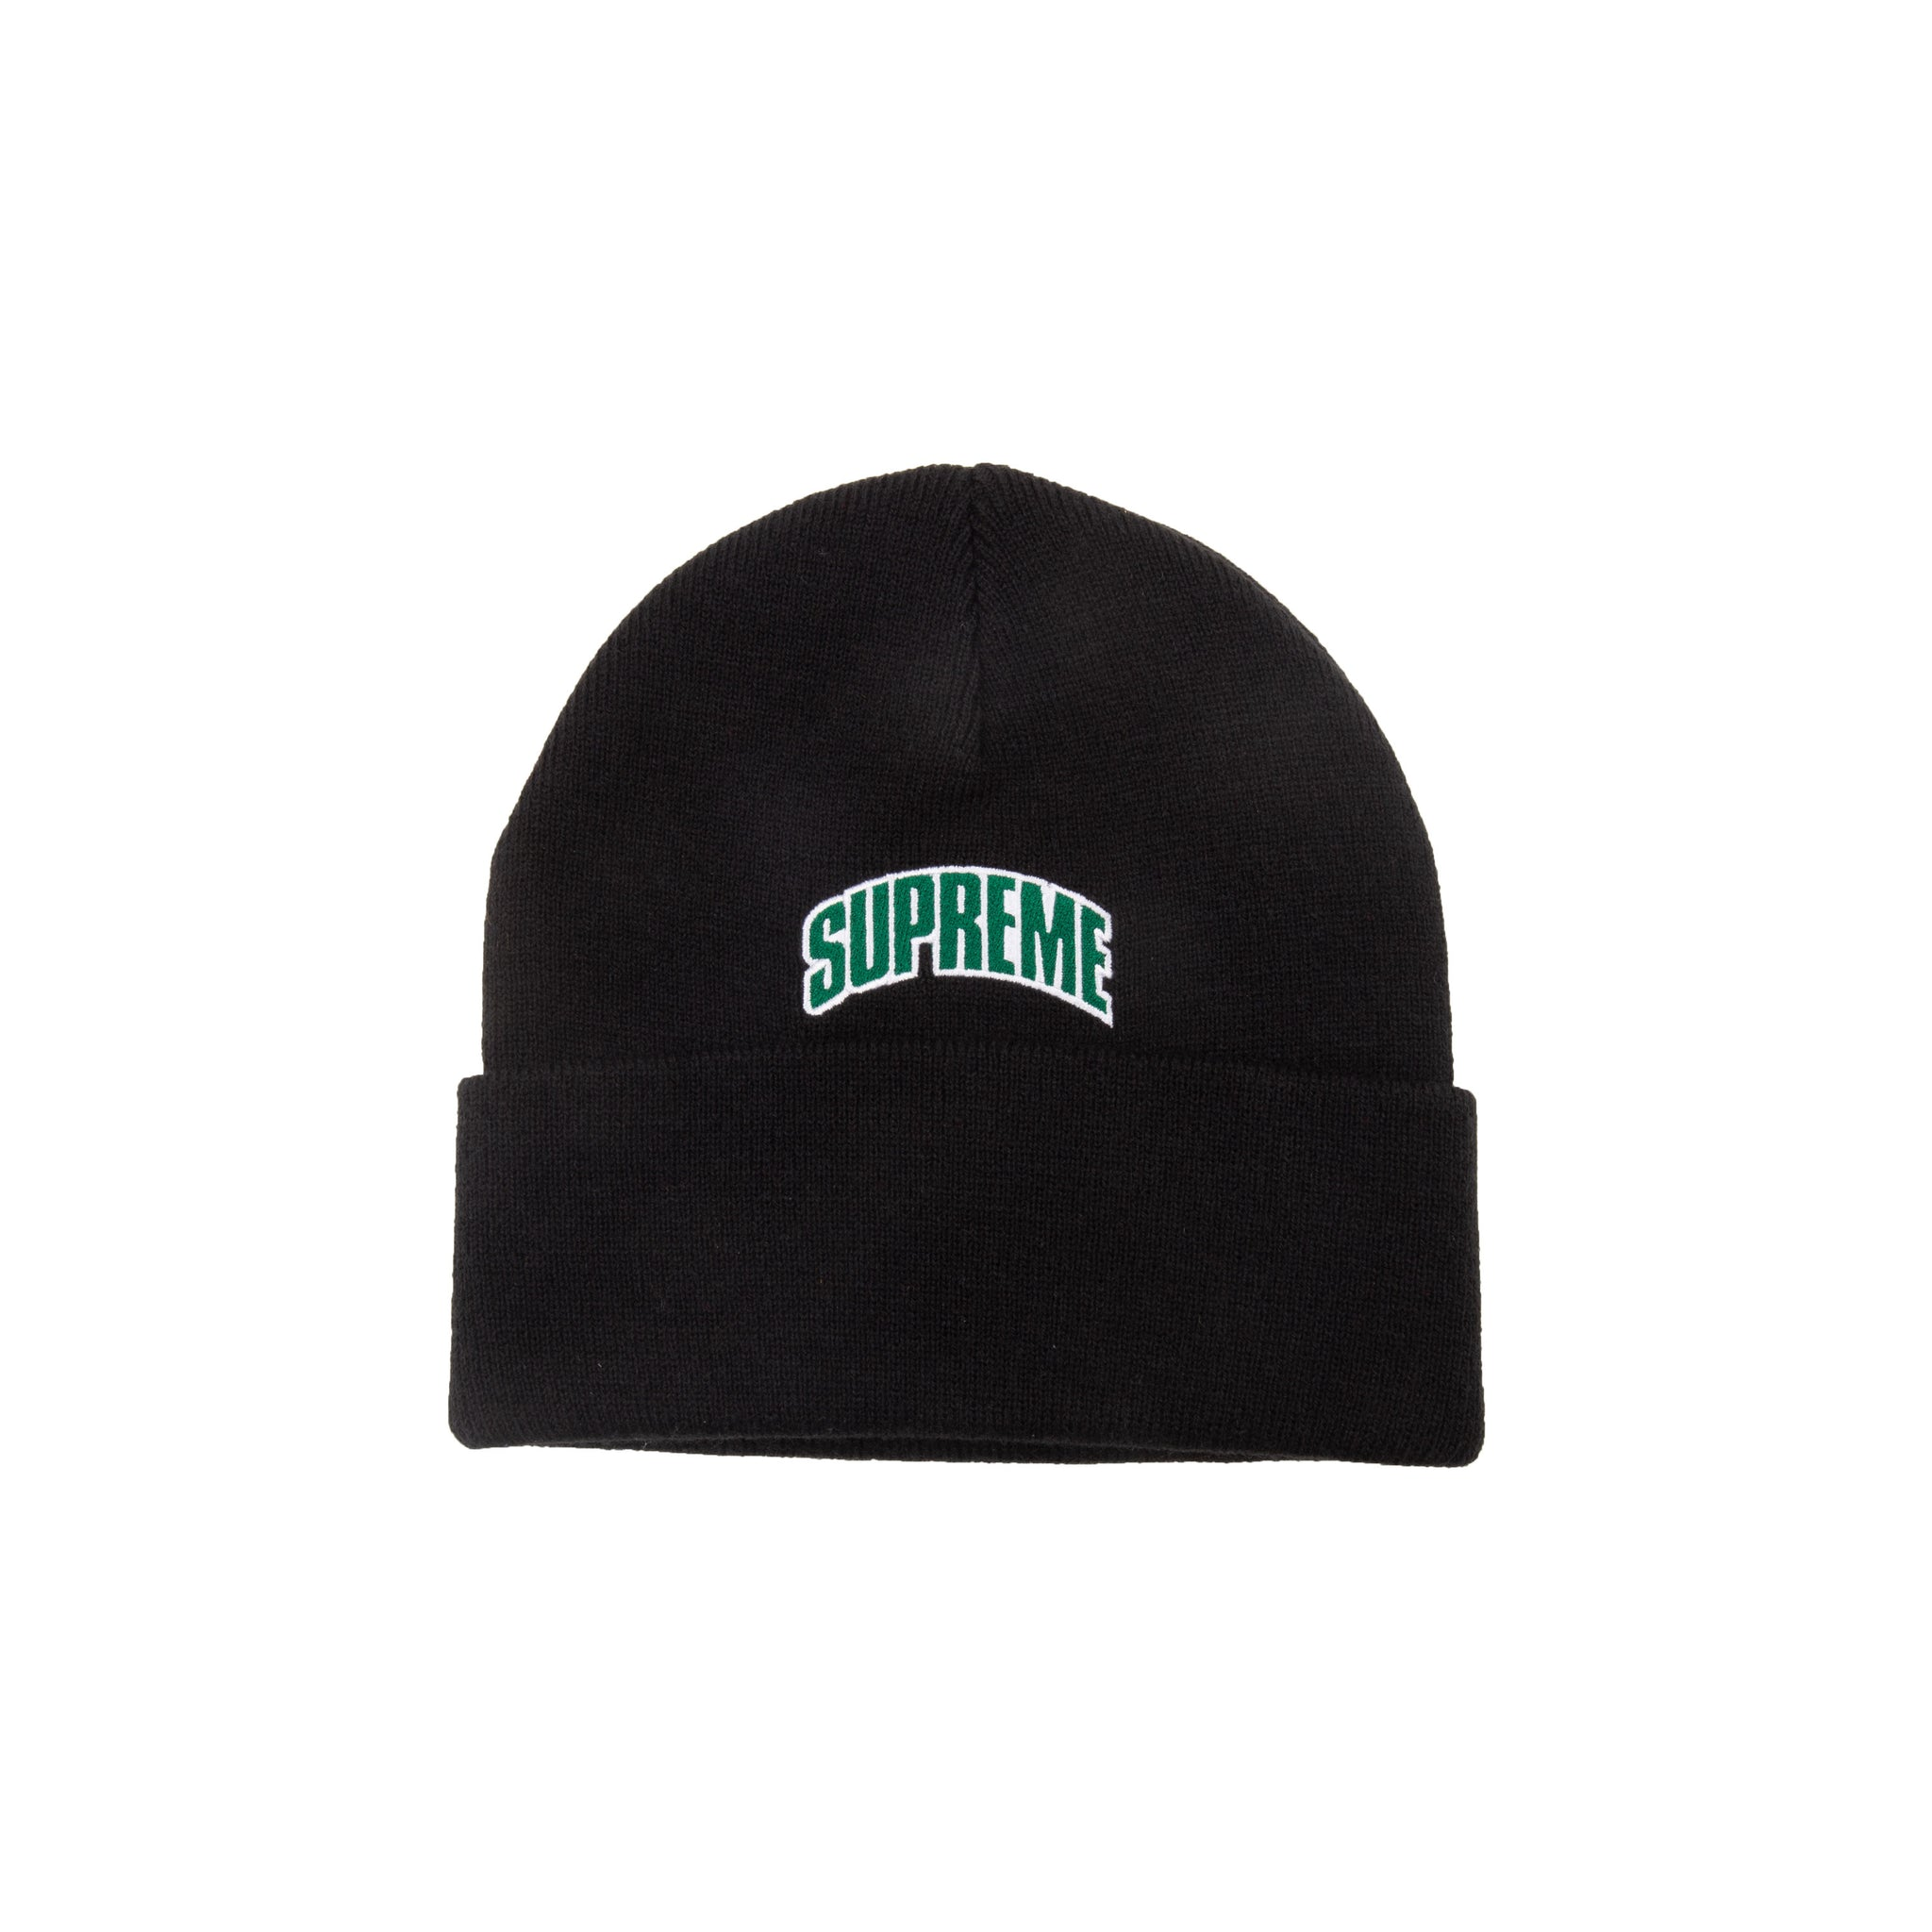 Supreme Black Crown Logo Beanie